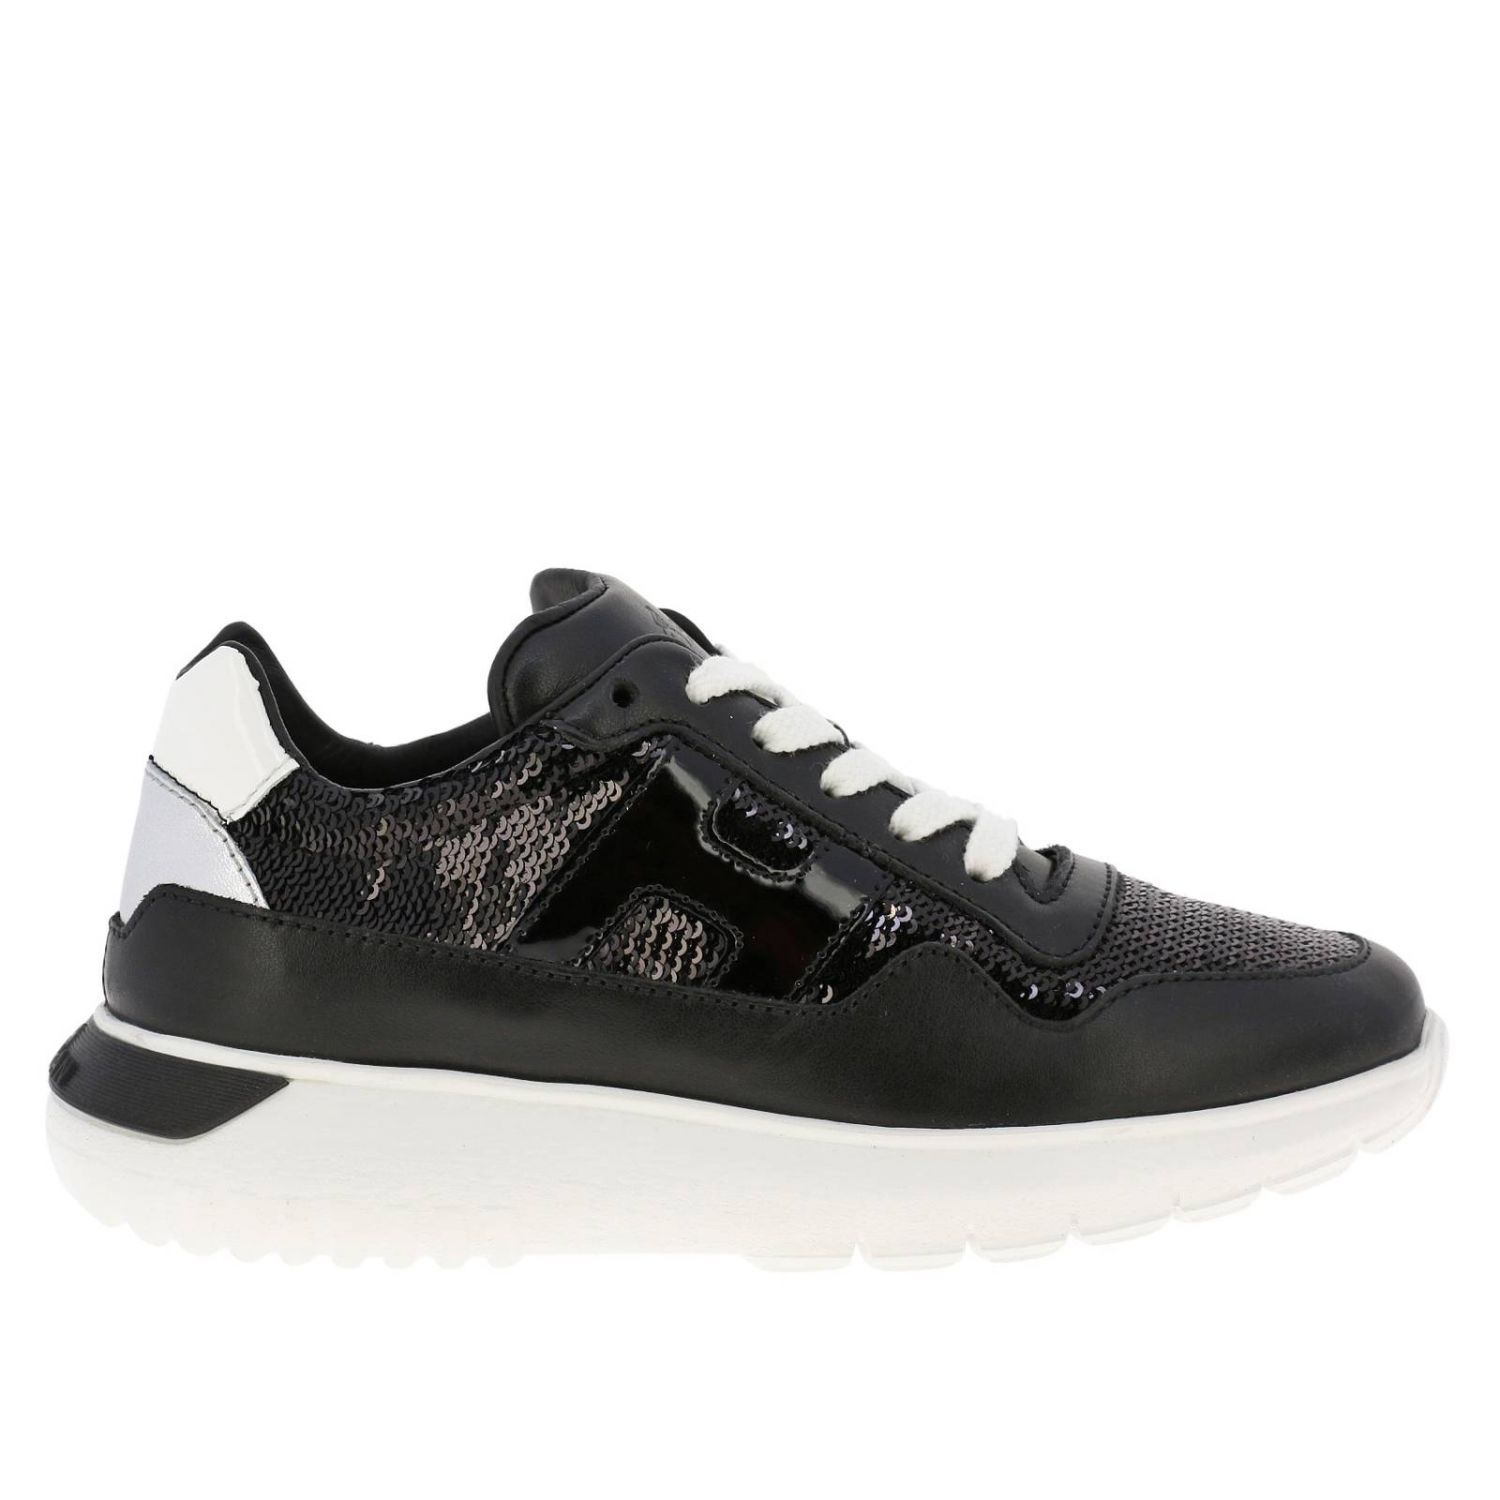 Cube Hogan sneakers in leather and sequins black 1